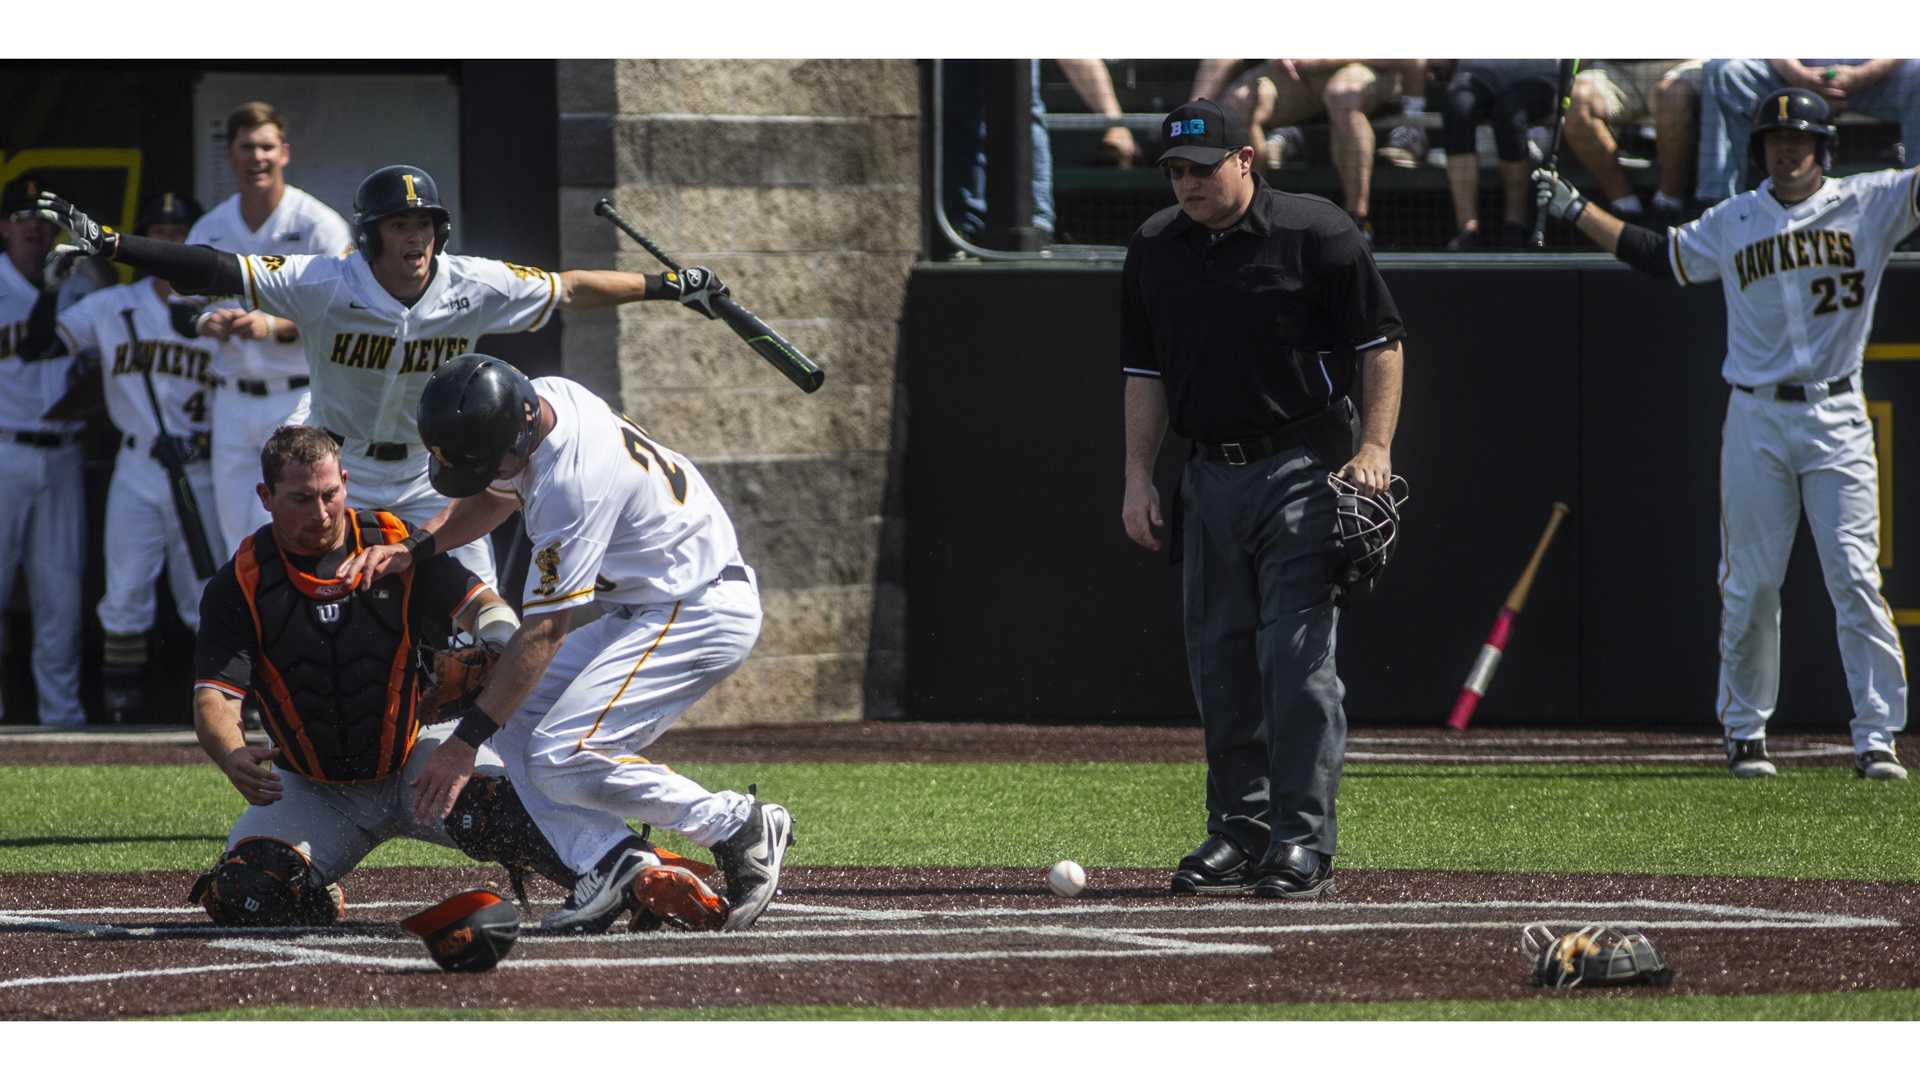 Iowa's Austin Guzzo collides with the catcher at home plate during Iowa's game against Oklahoma State at Duane Banks Field on Saturday May 5, 2018. The Hawkeyes defeated the Cowboys 16-14. (Nick Rohlman/The Daily Iowan)